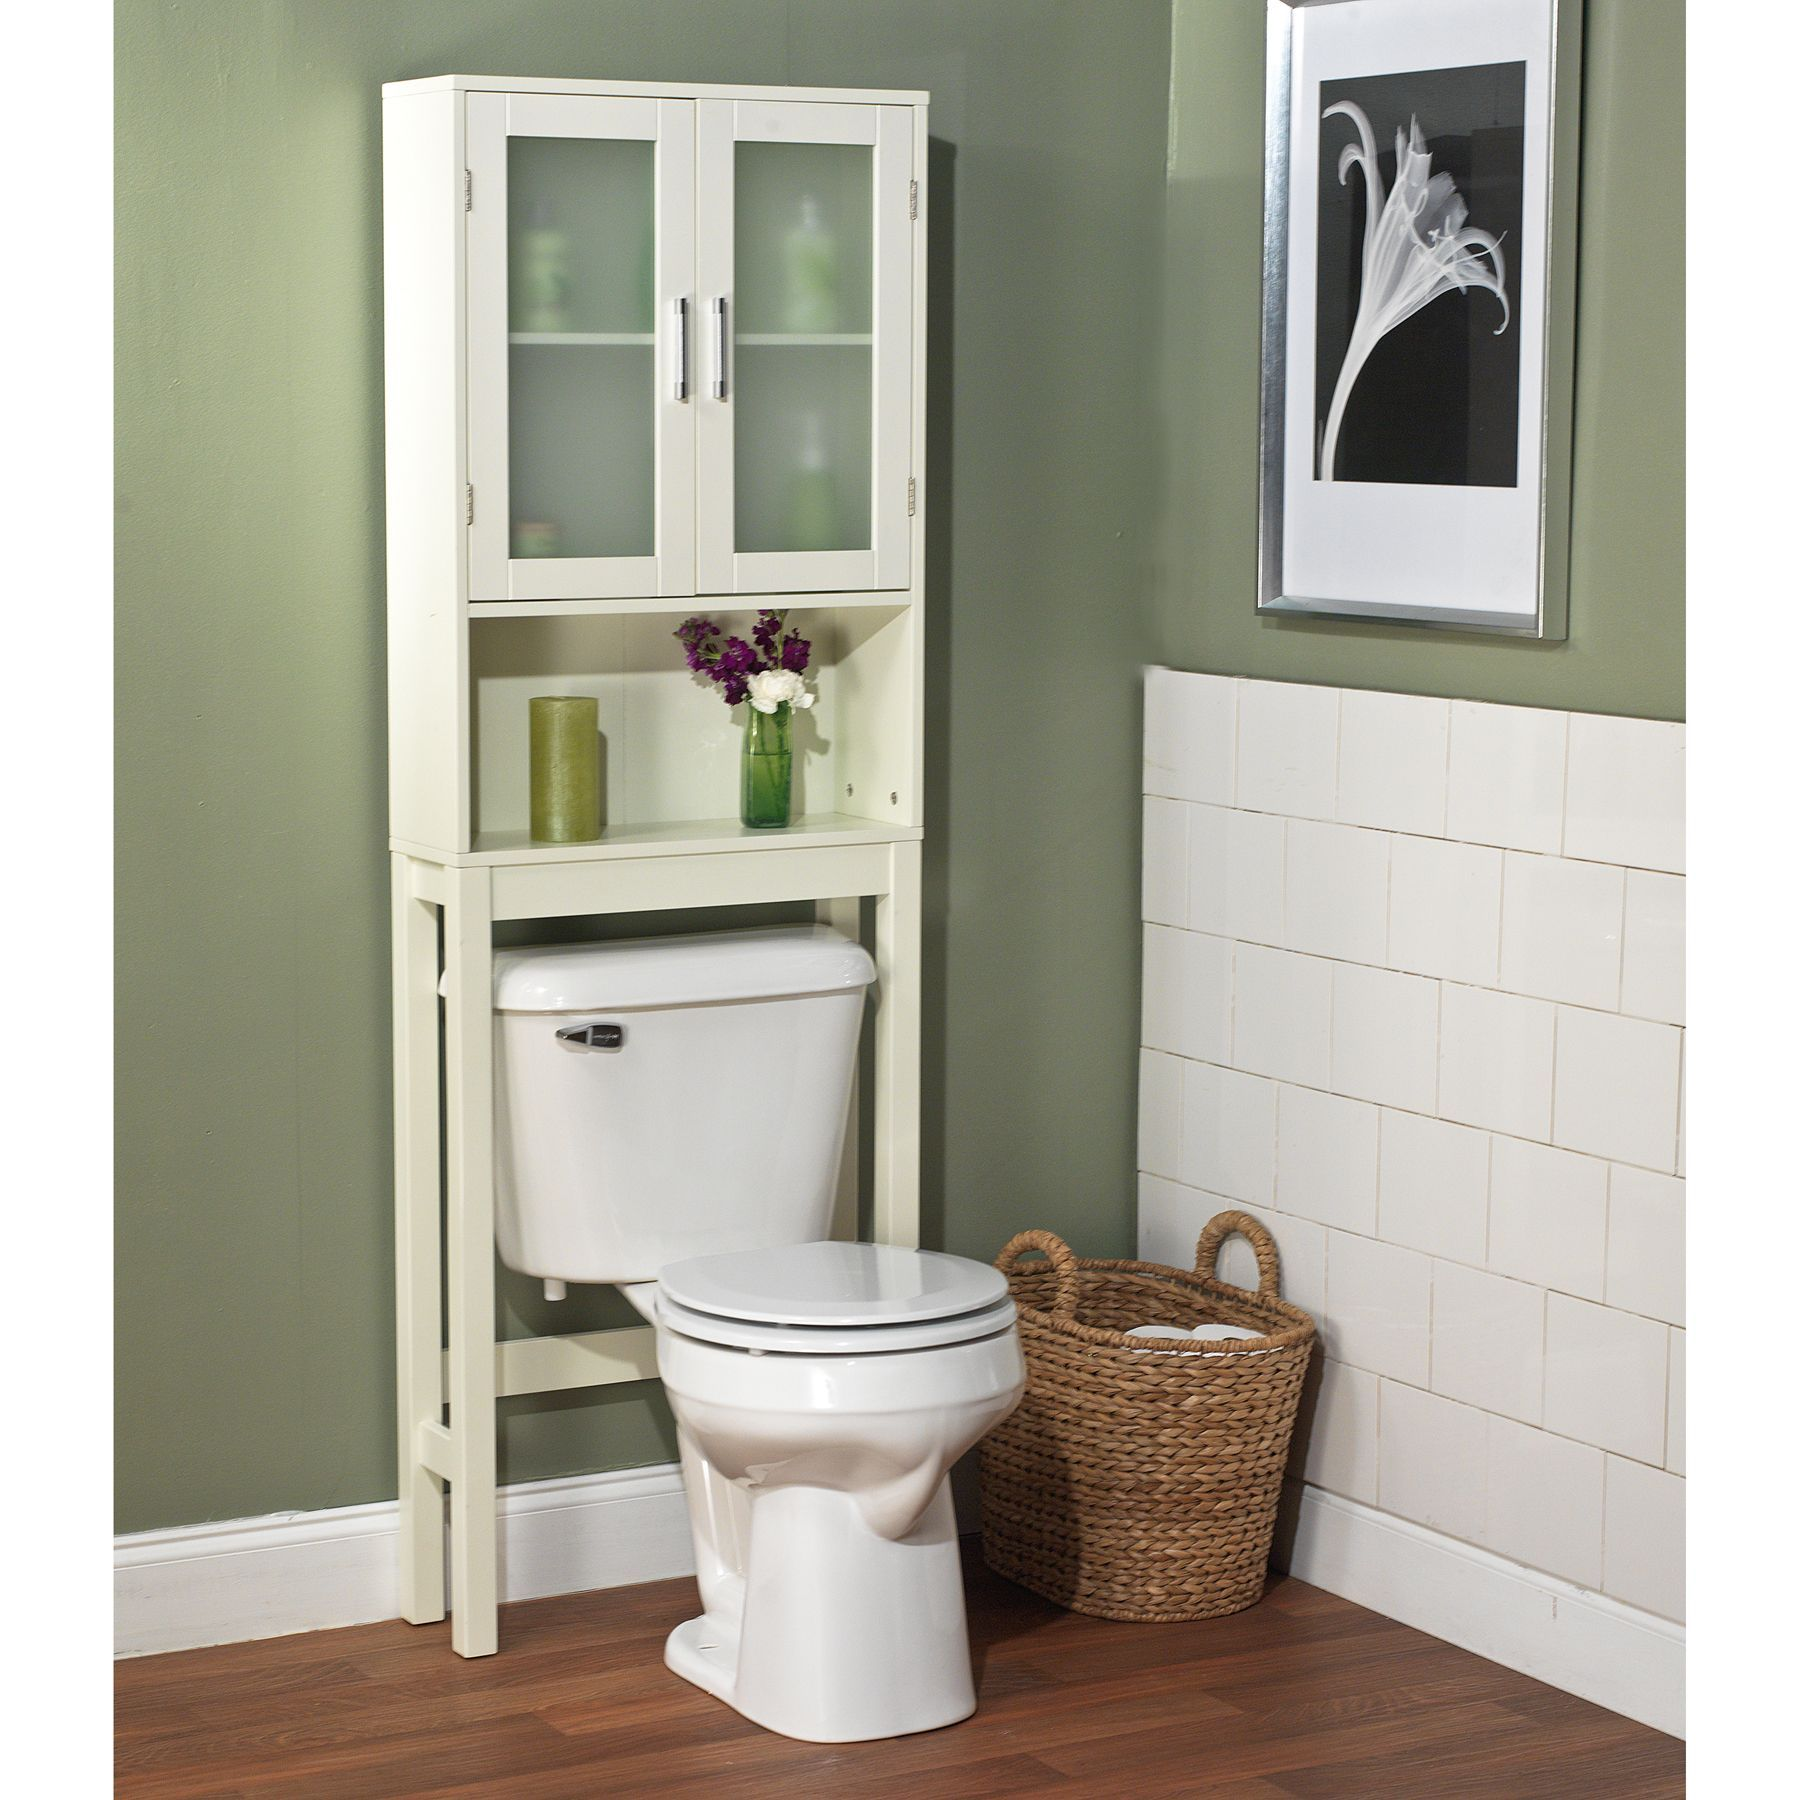 Exceptionnel Place This White Bathroom Space Saver Around The Toilet And Add Bathroom  Storage Space Quickly And